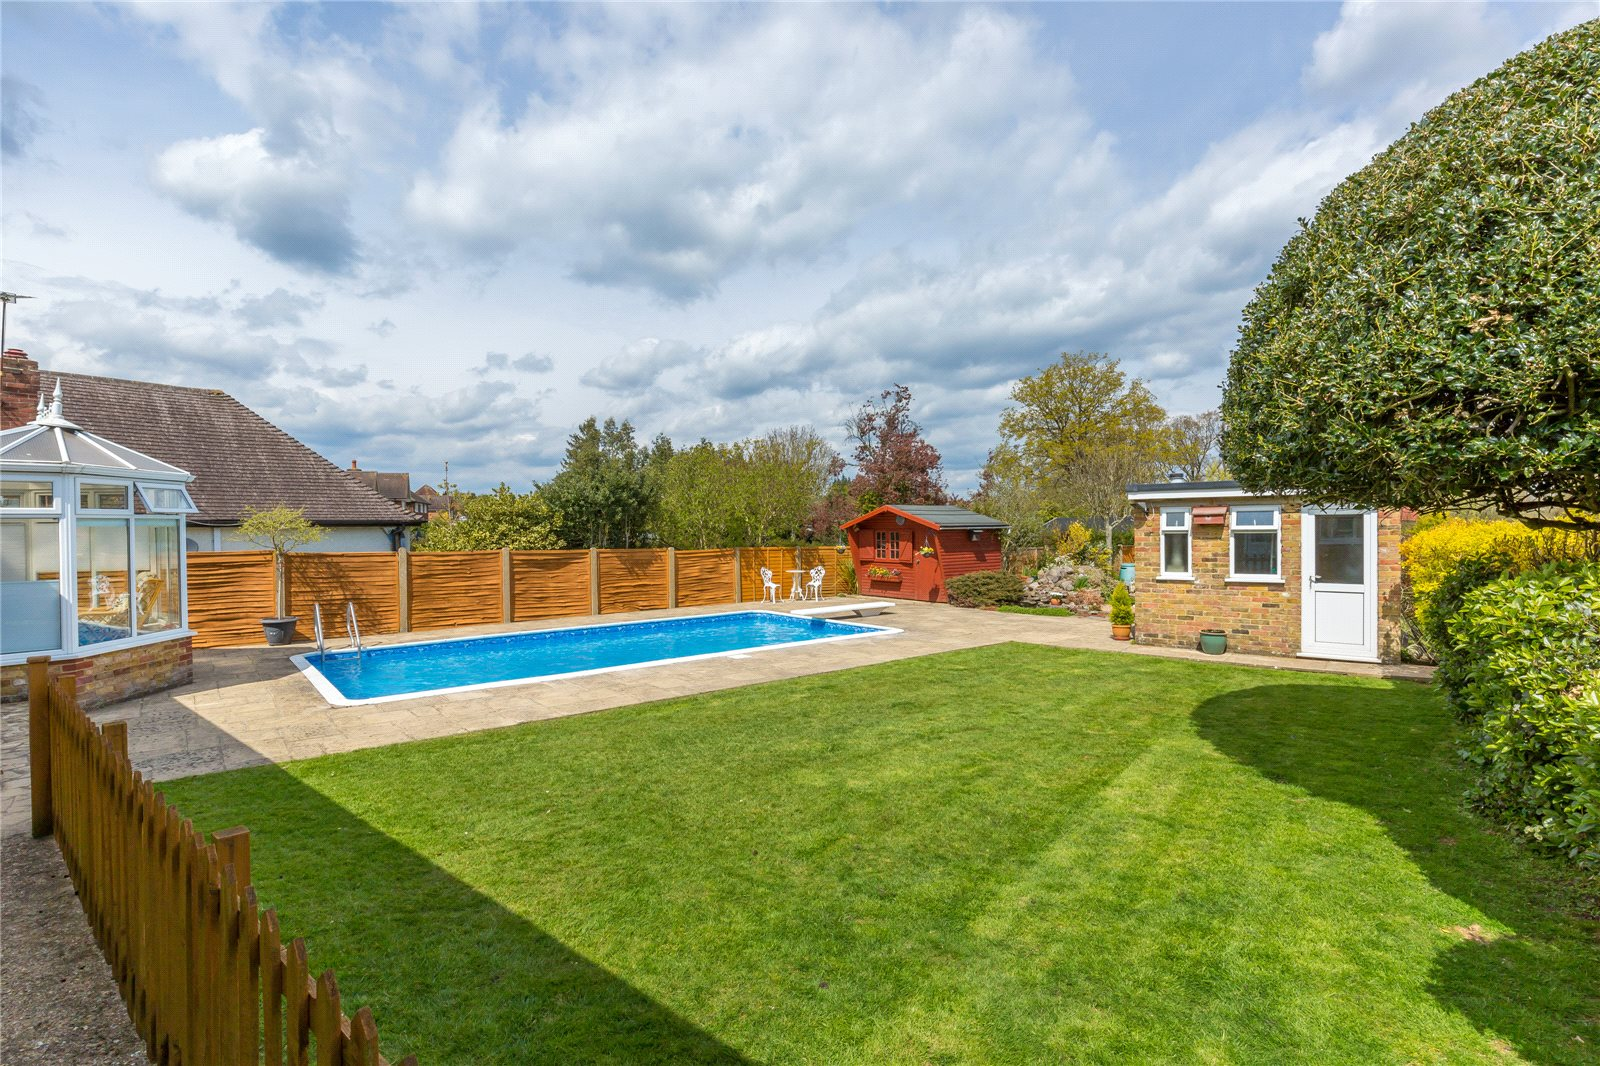 Additional photo for property listing at Denham Lane, Chalfont St Peter, Buckinghamshire, SL9 Chalfont St Peter, Αγγλια